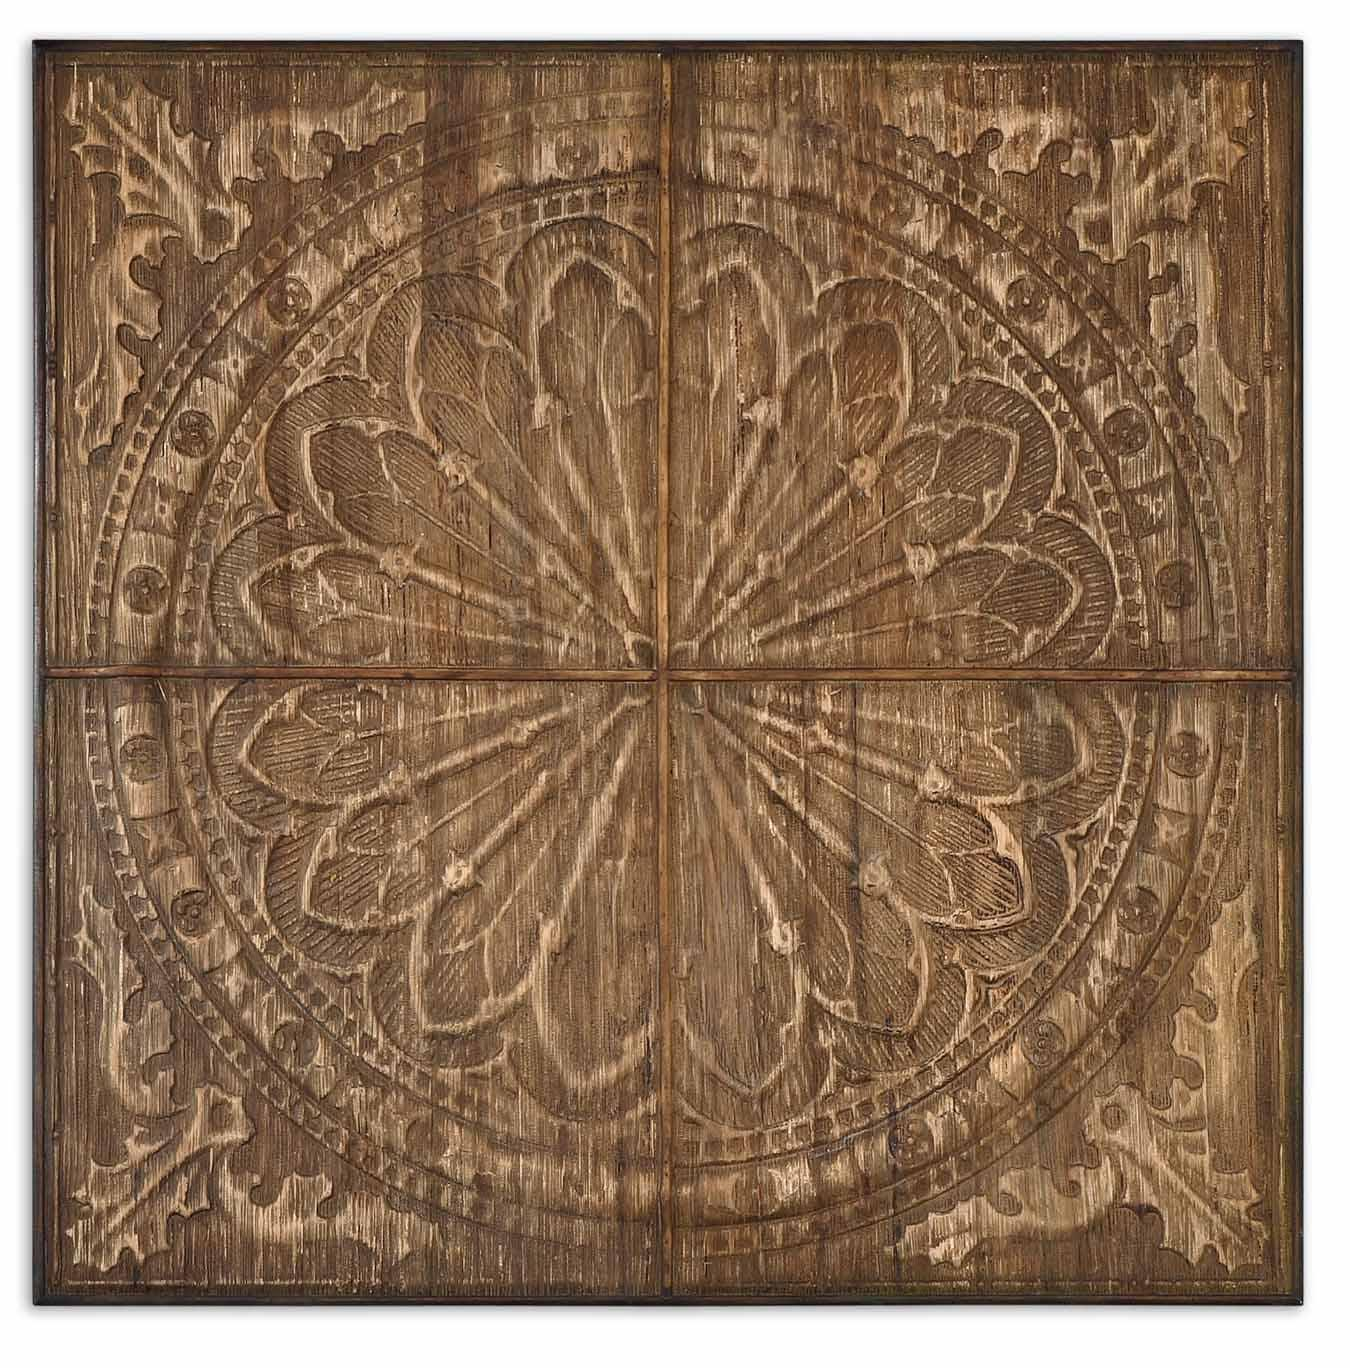 Uttermost Alternative Wall Decor Camillus - Item Number: 13780